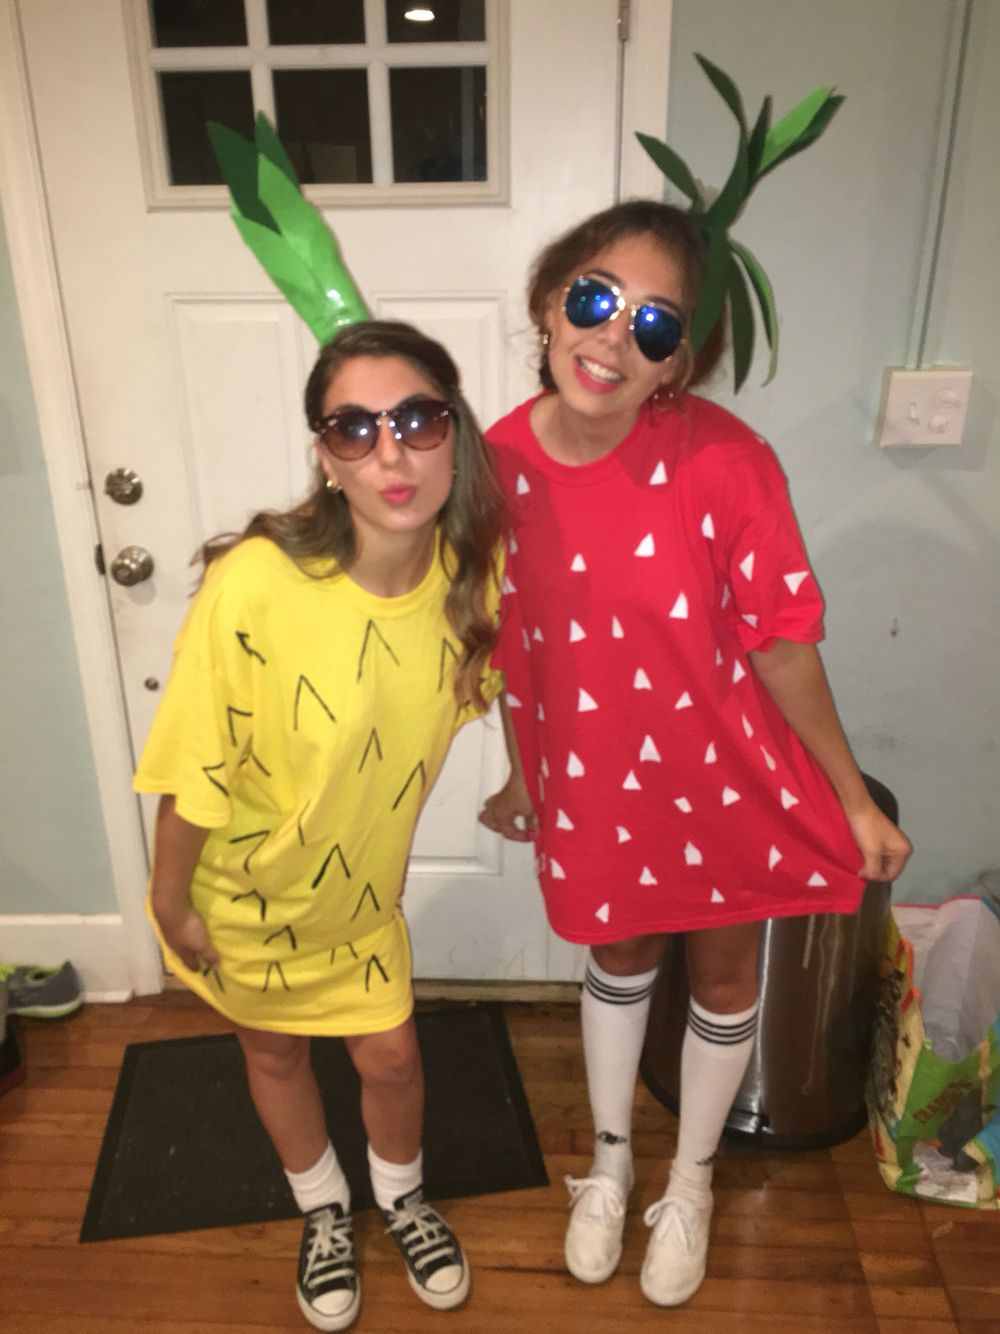 diy strawberry and pineapple costume t i p s pineapple. Black Bedroom Furniture Sets. Home Design Ideas